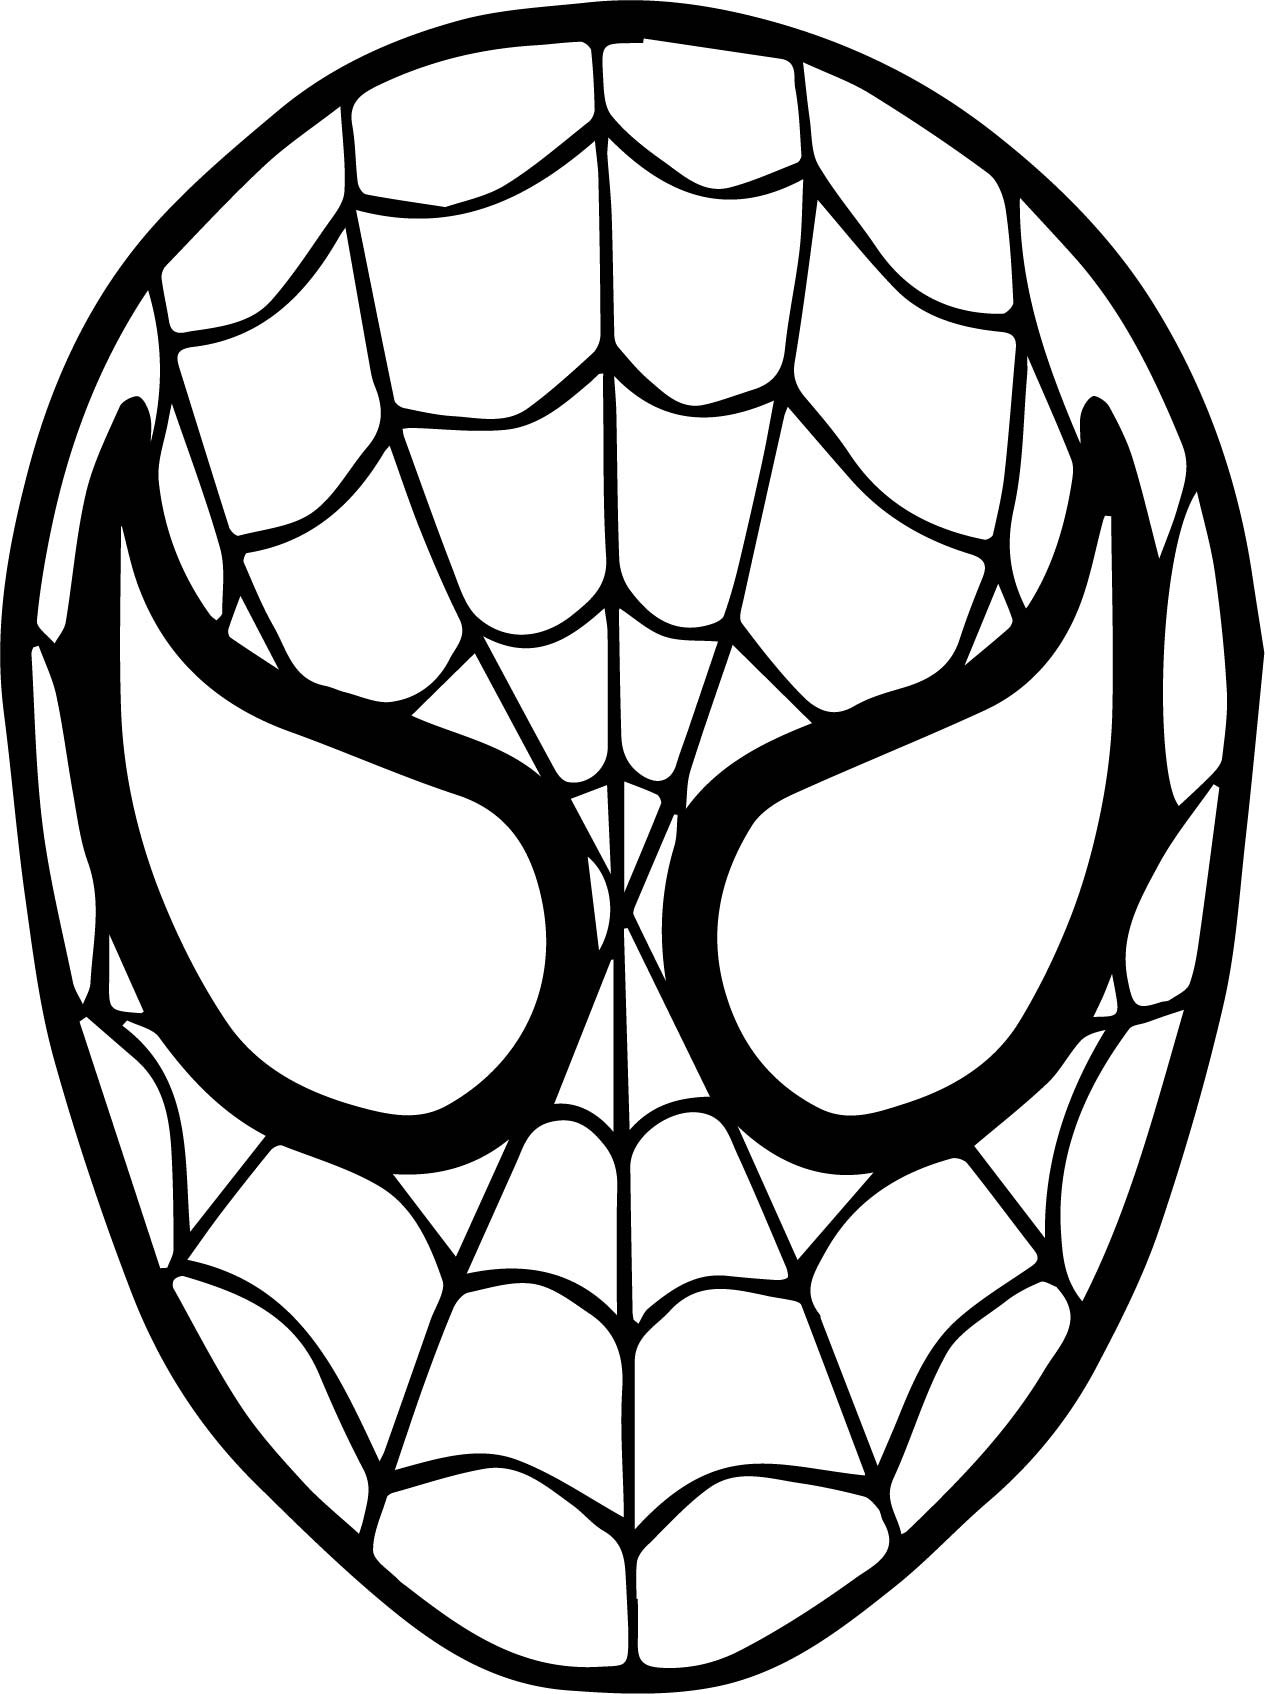 Spiderman Drawing | Free download on ClipArtMag